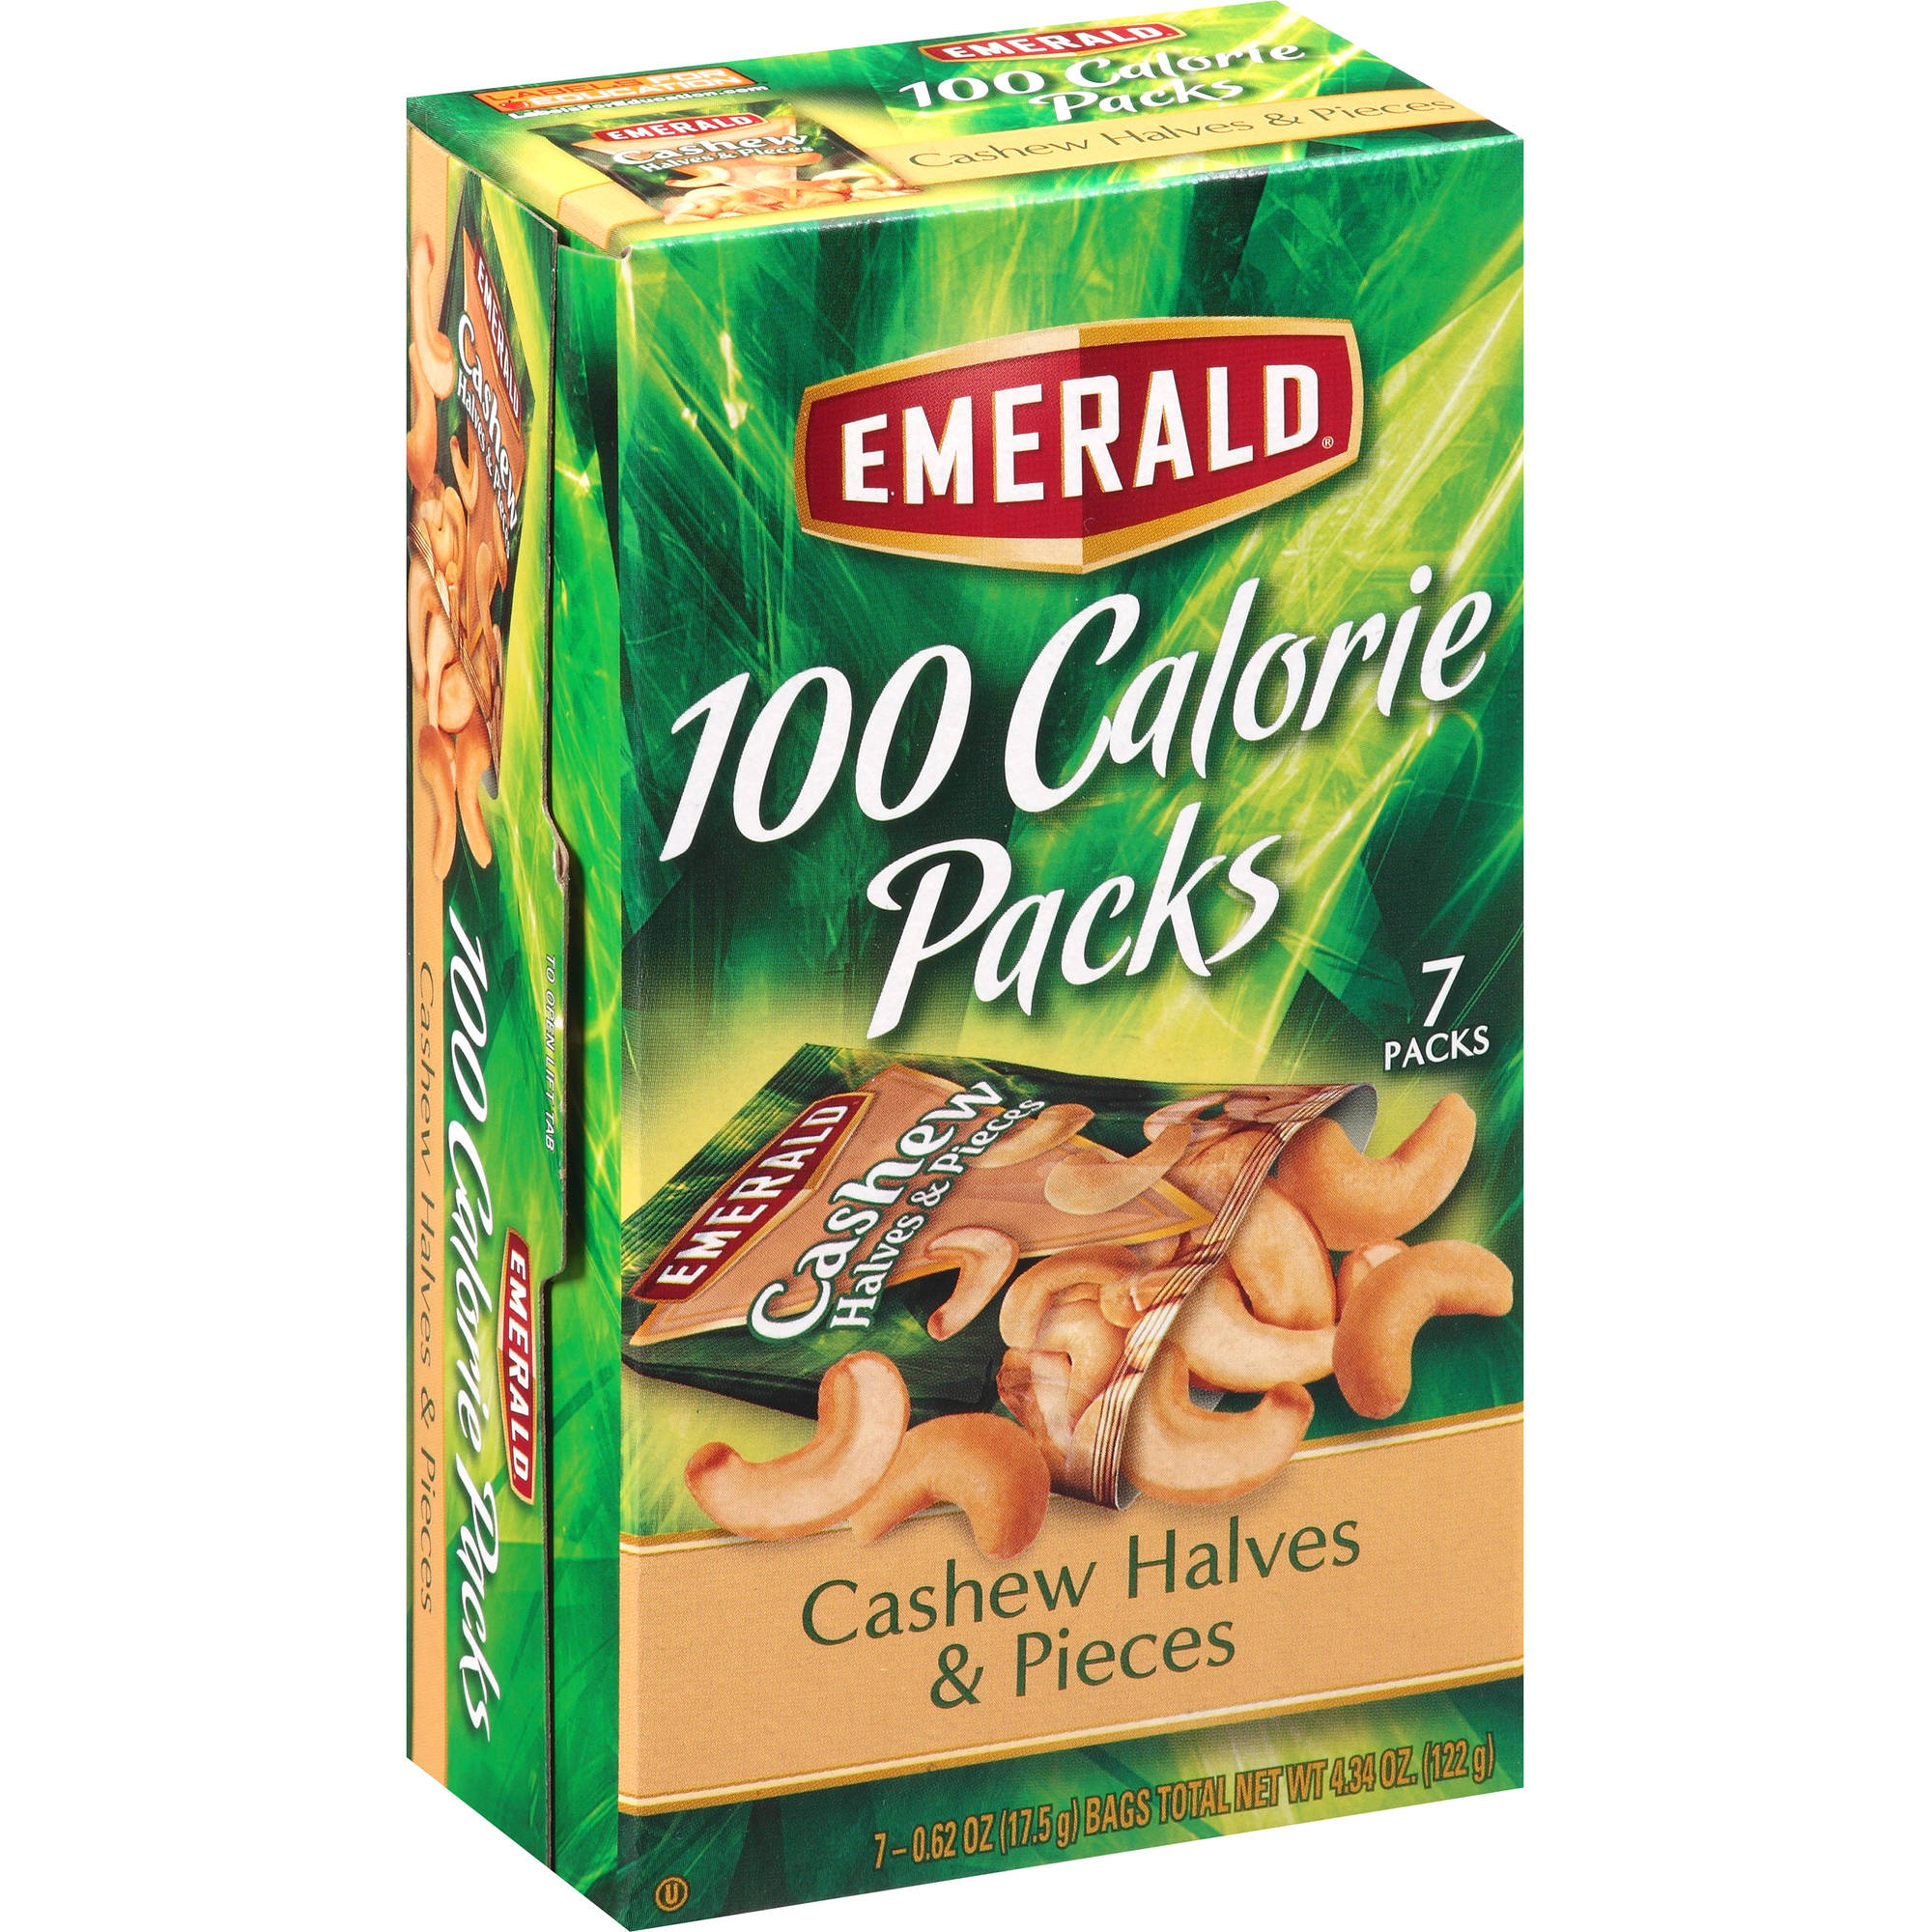 Emerald  Roasted & Salted Cashew Halves & Pieces 100 Calorie Packs, 7 count